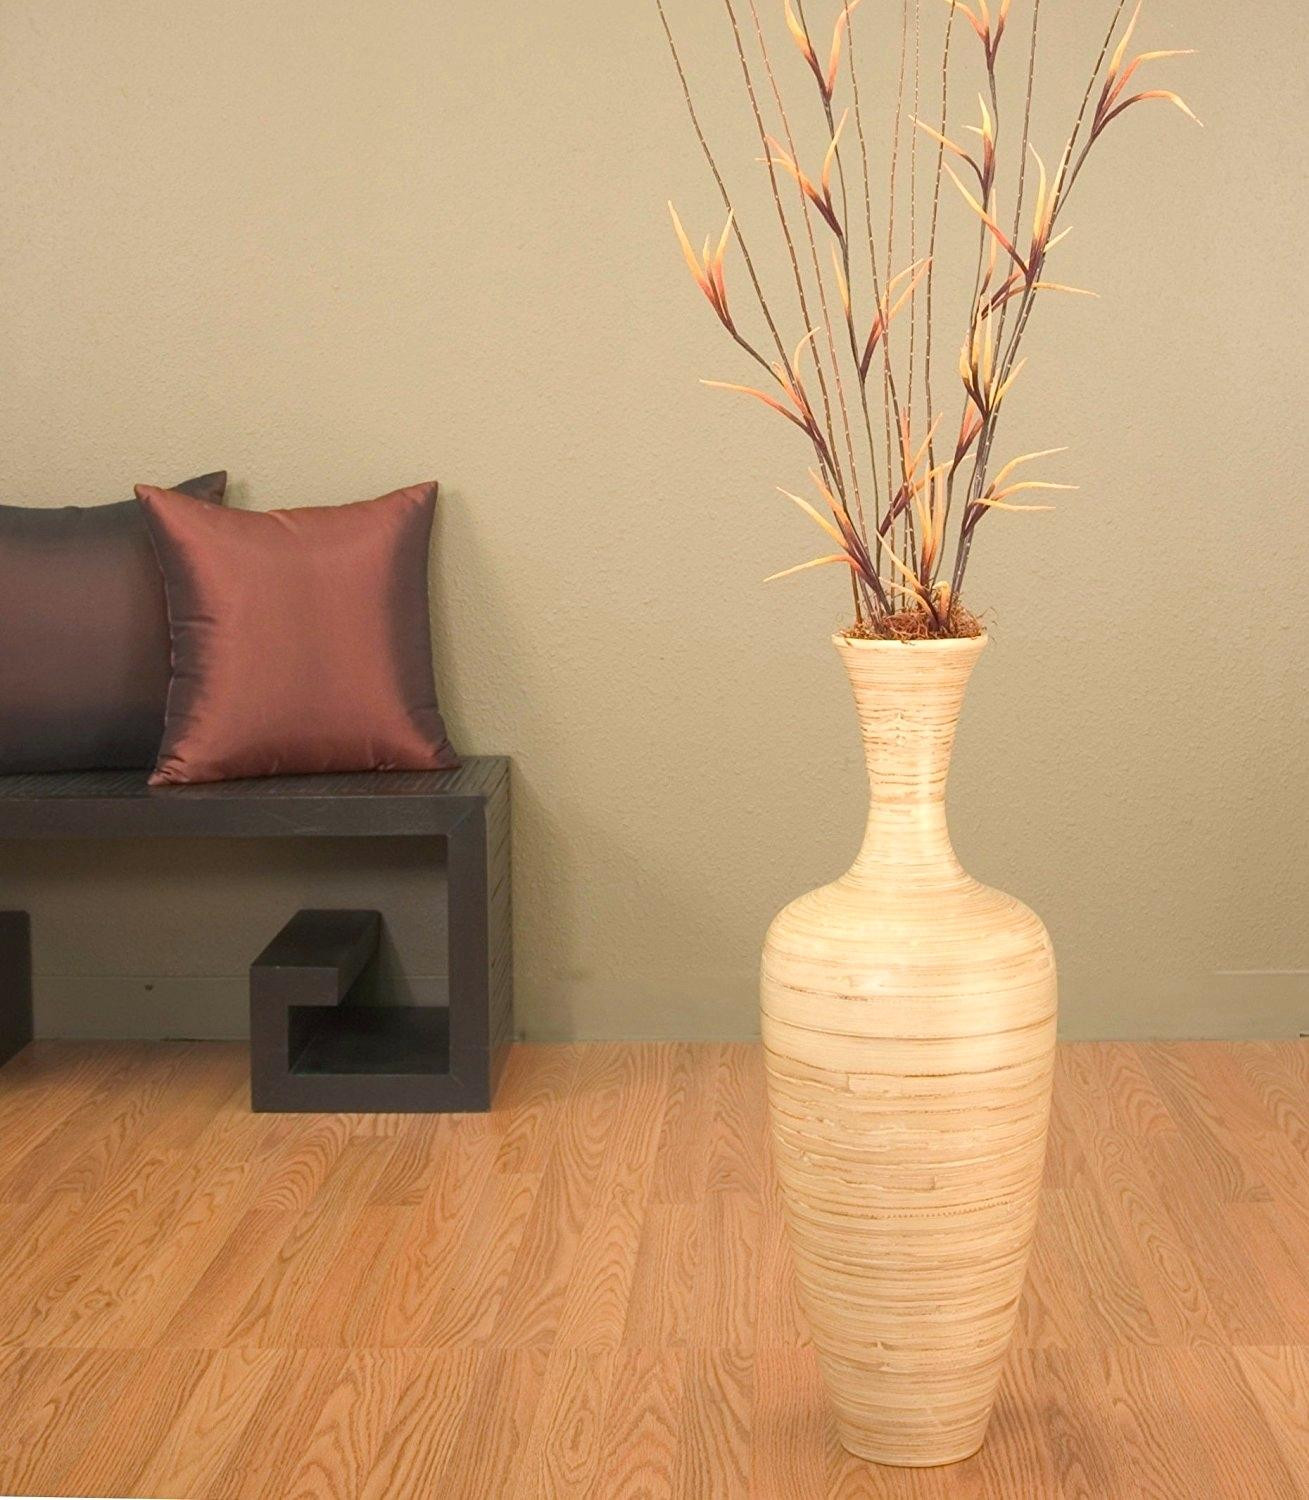 long floor vases online india of large floor vase vases set of 3 for cheap with artificial flowers intended for large floor vase plnts ccesories tll decortive vases for sale cheap fillers large floor vase